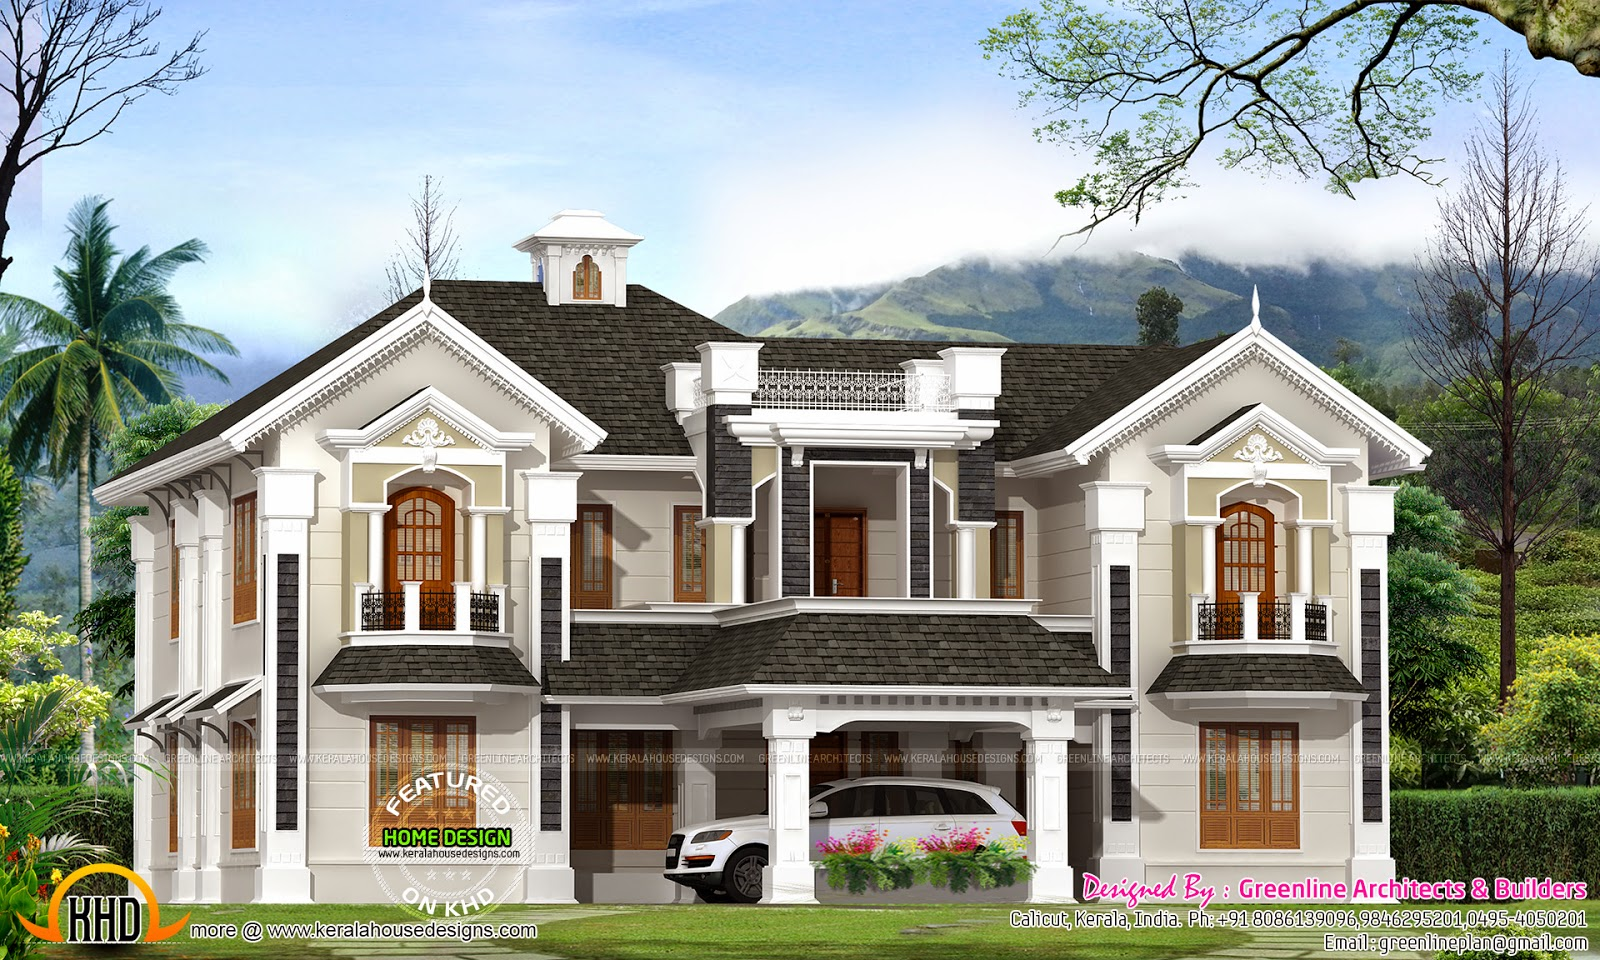 Colonial style house in kerala kerala home design and for Colonial style homes pictures